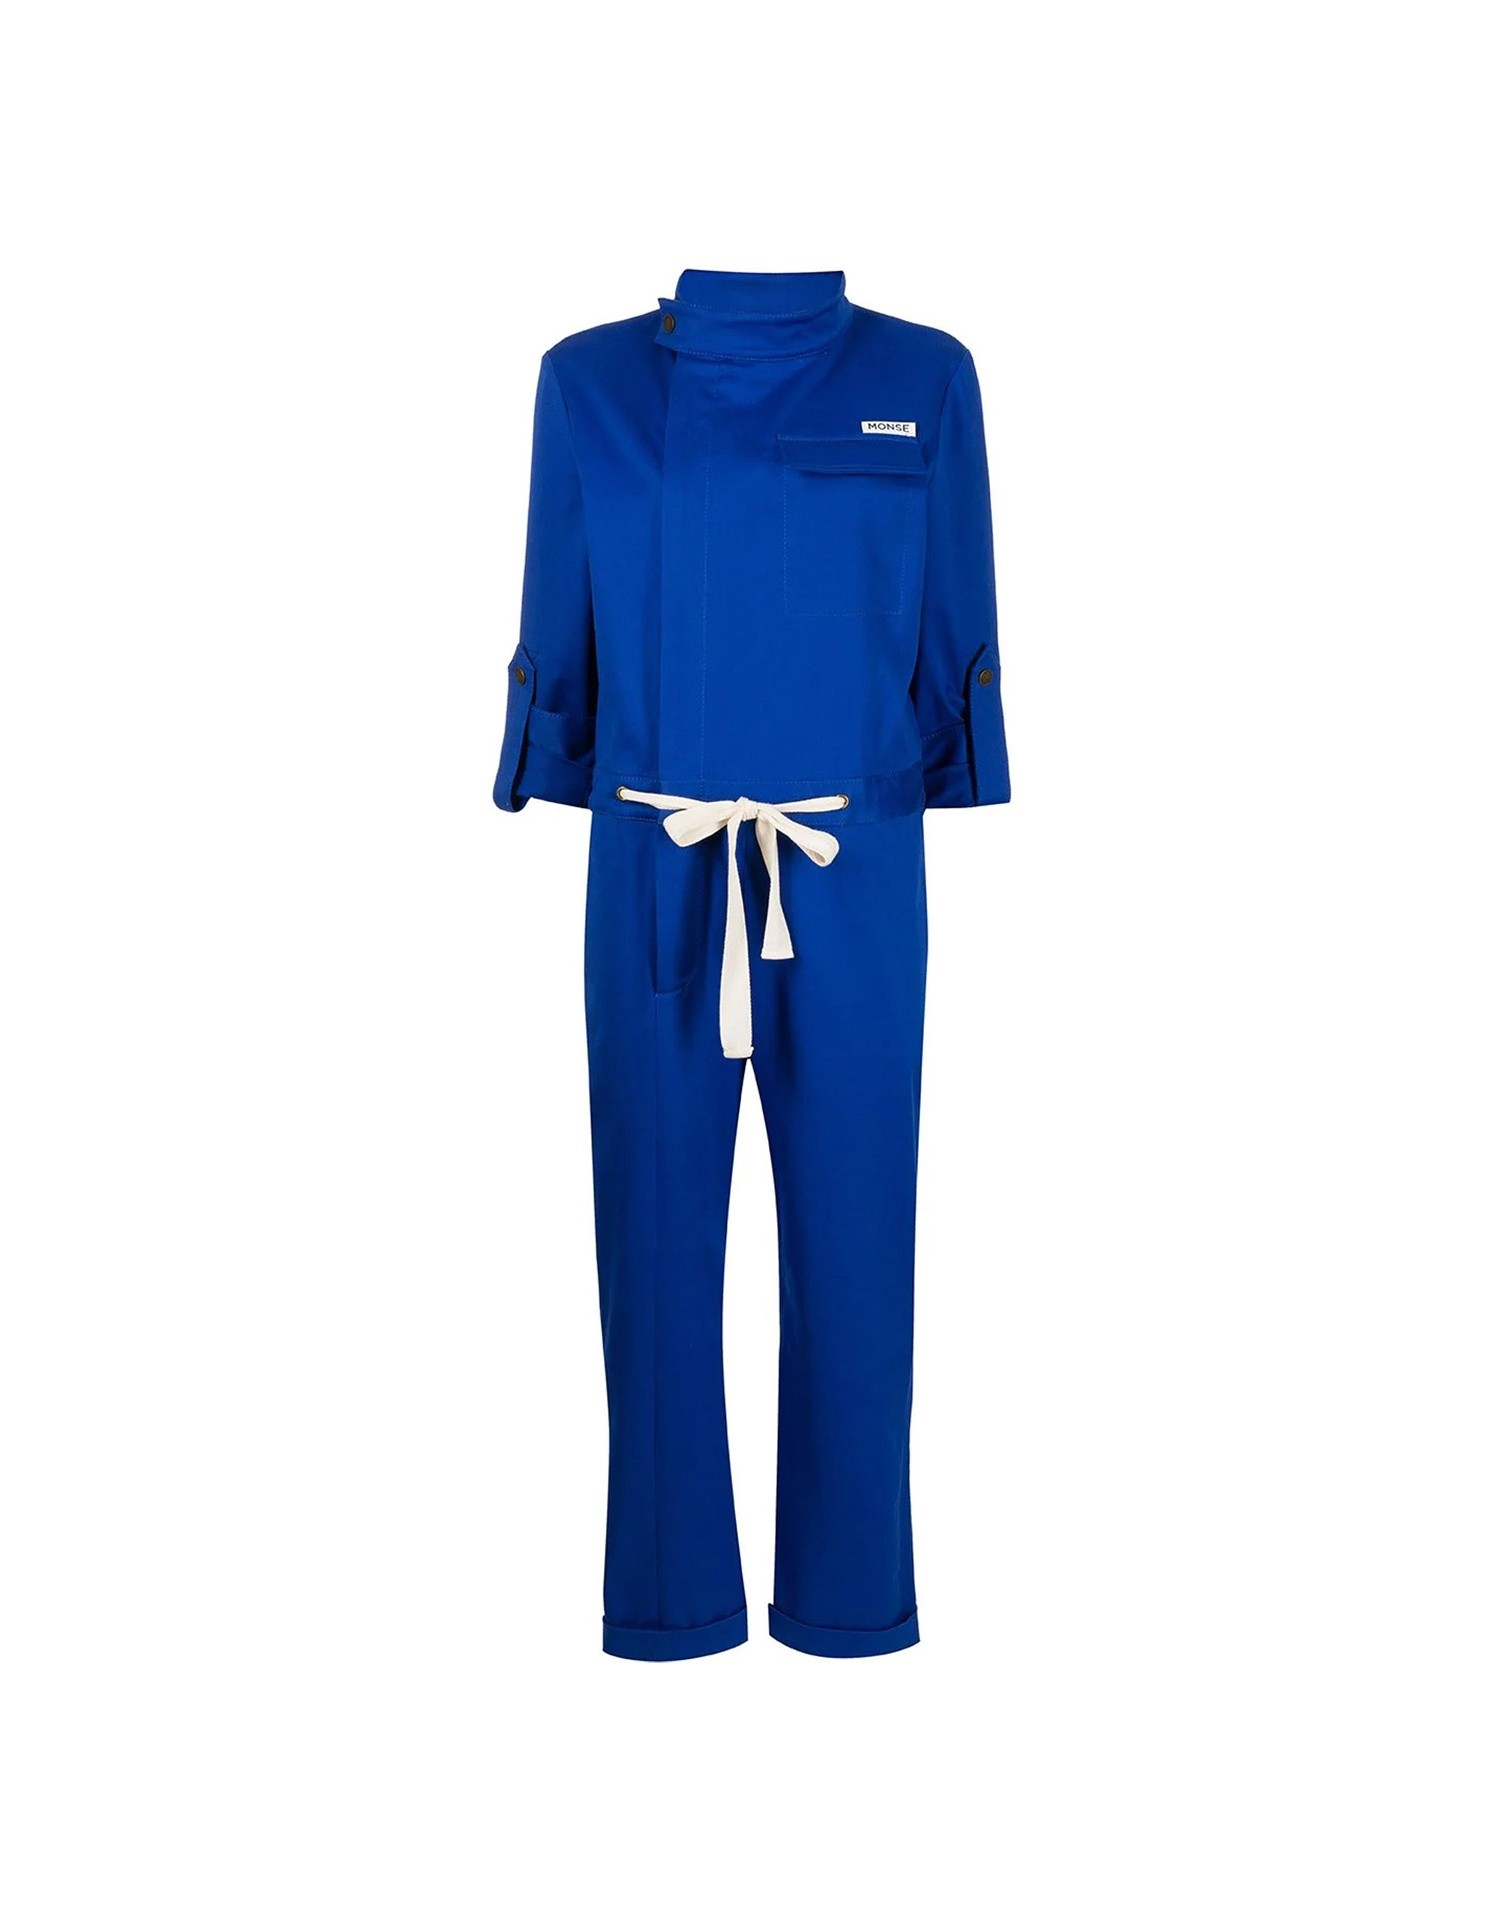 MONSE Racer Jumpsuit in Electric Blue on Model No Background Front